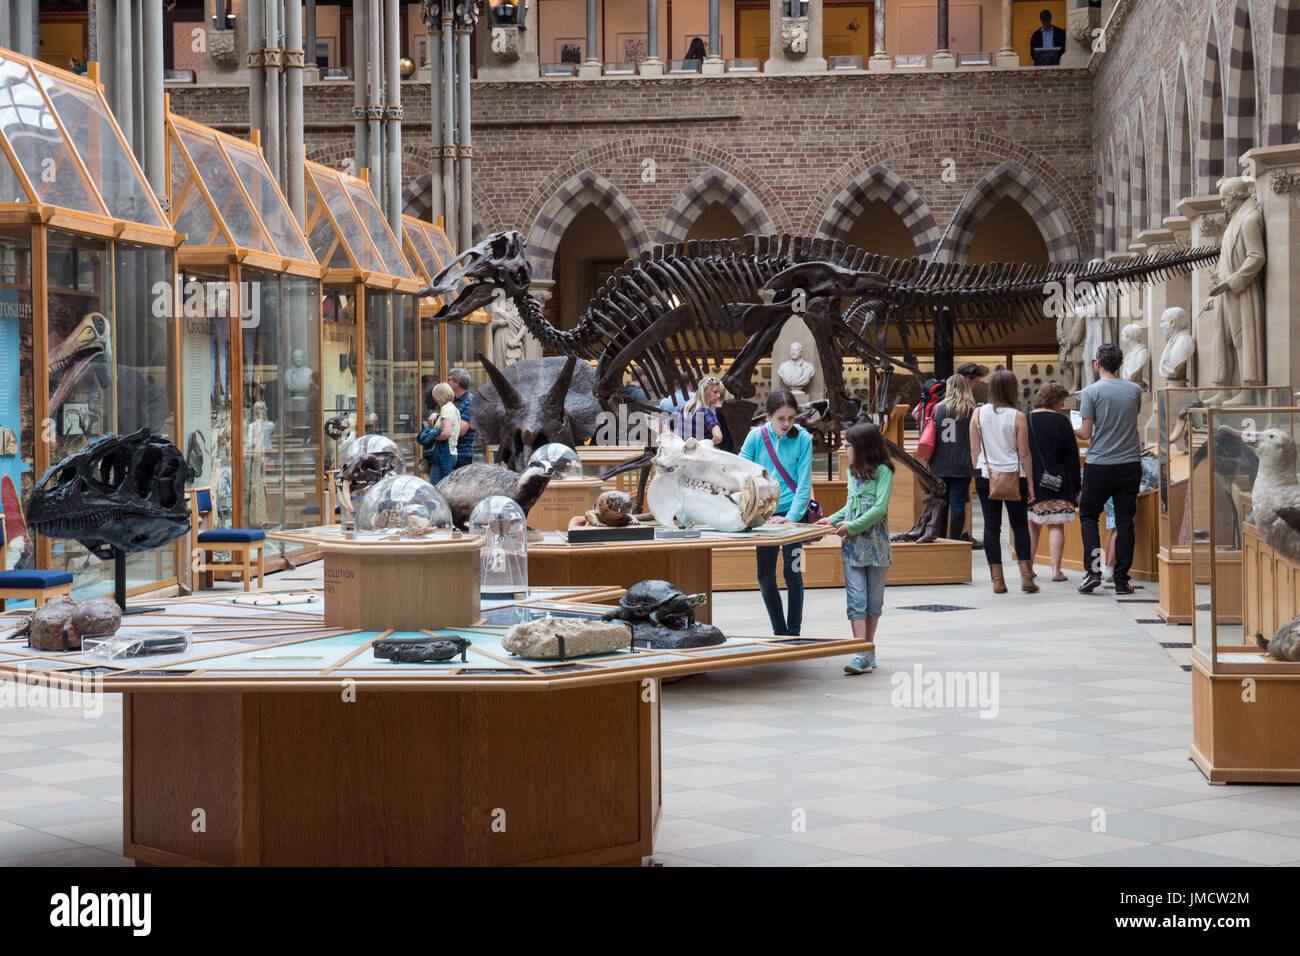 Internal view of the Natural History Museum, Oxford, England, UK. - Stock Image